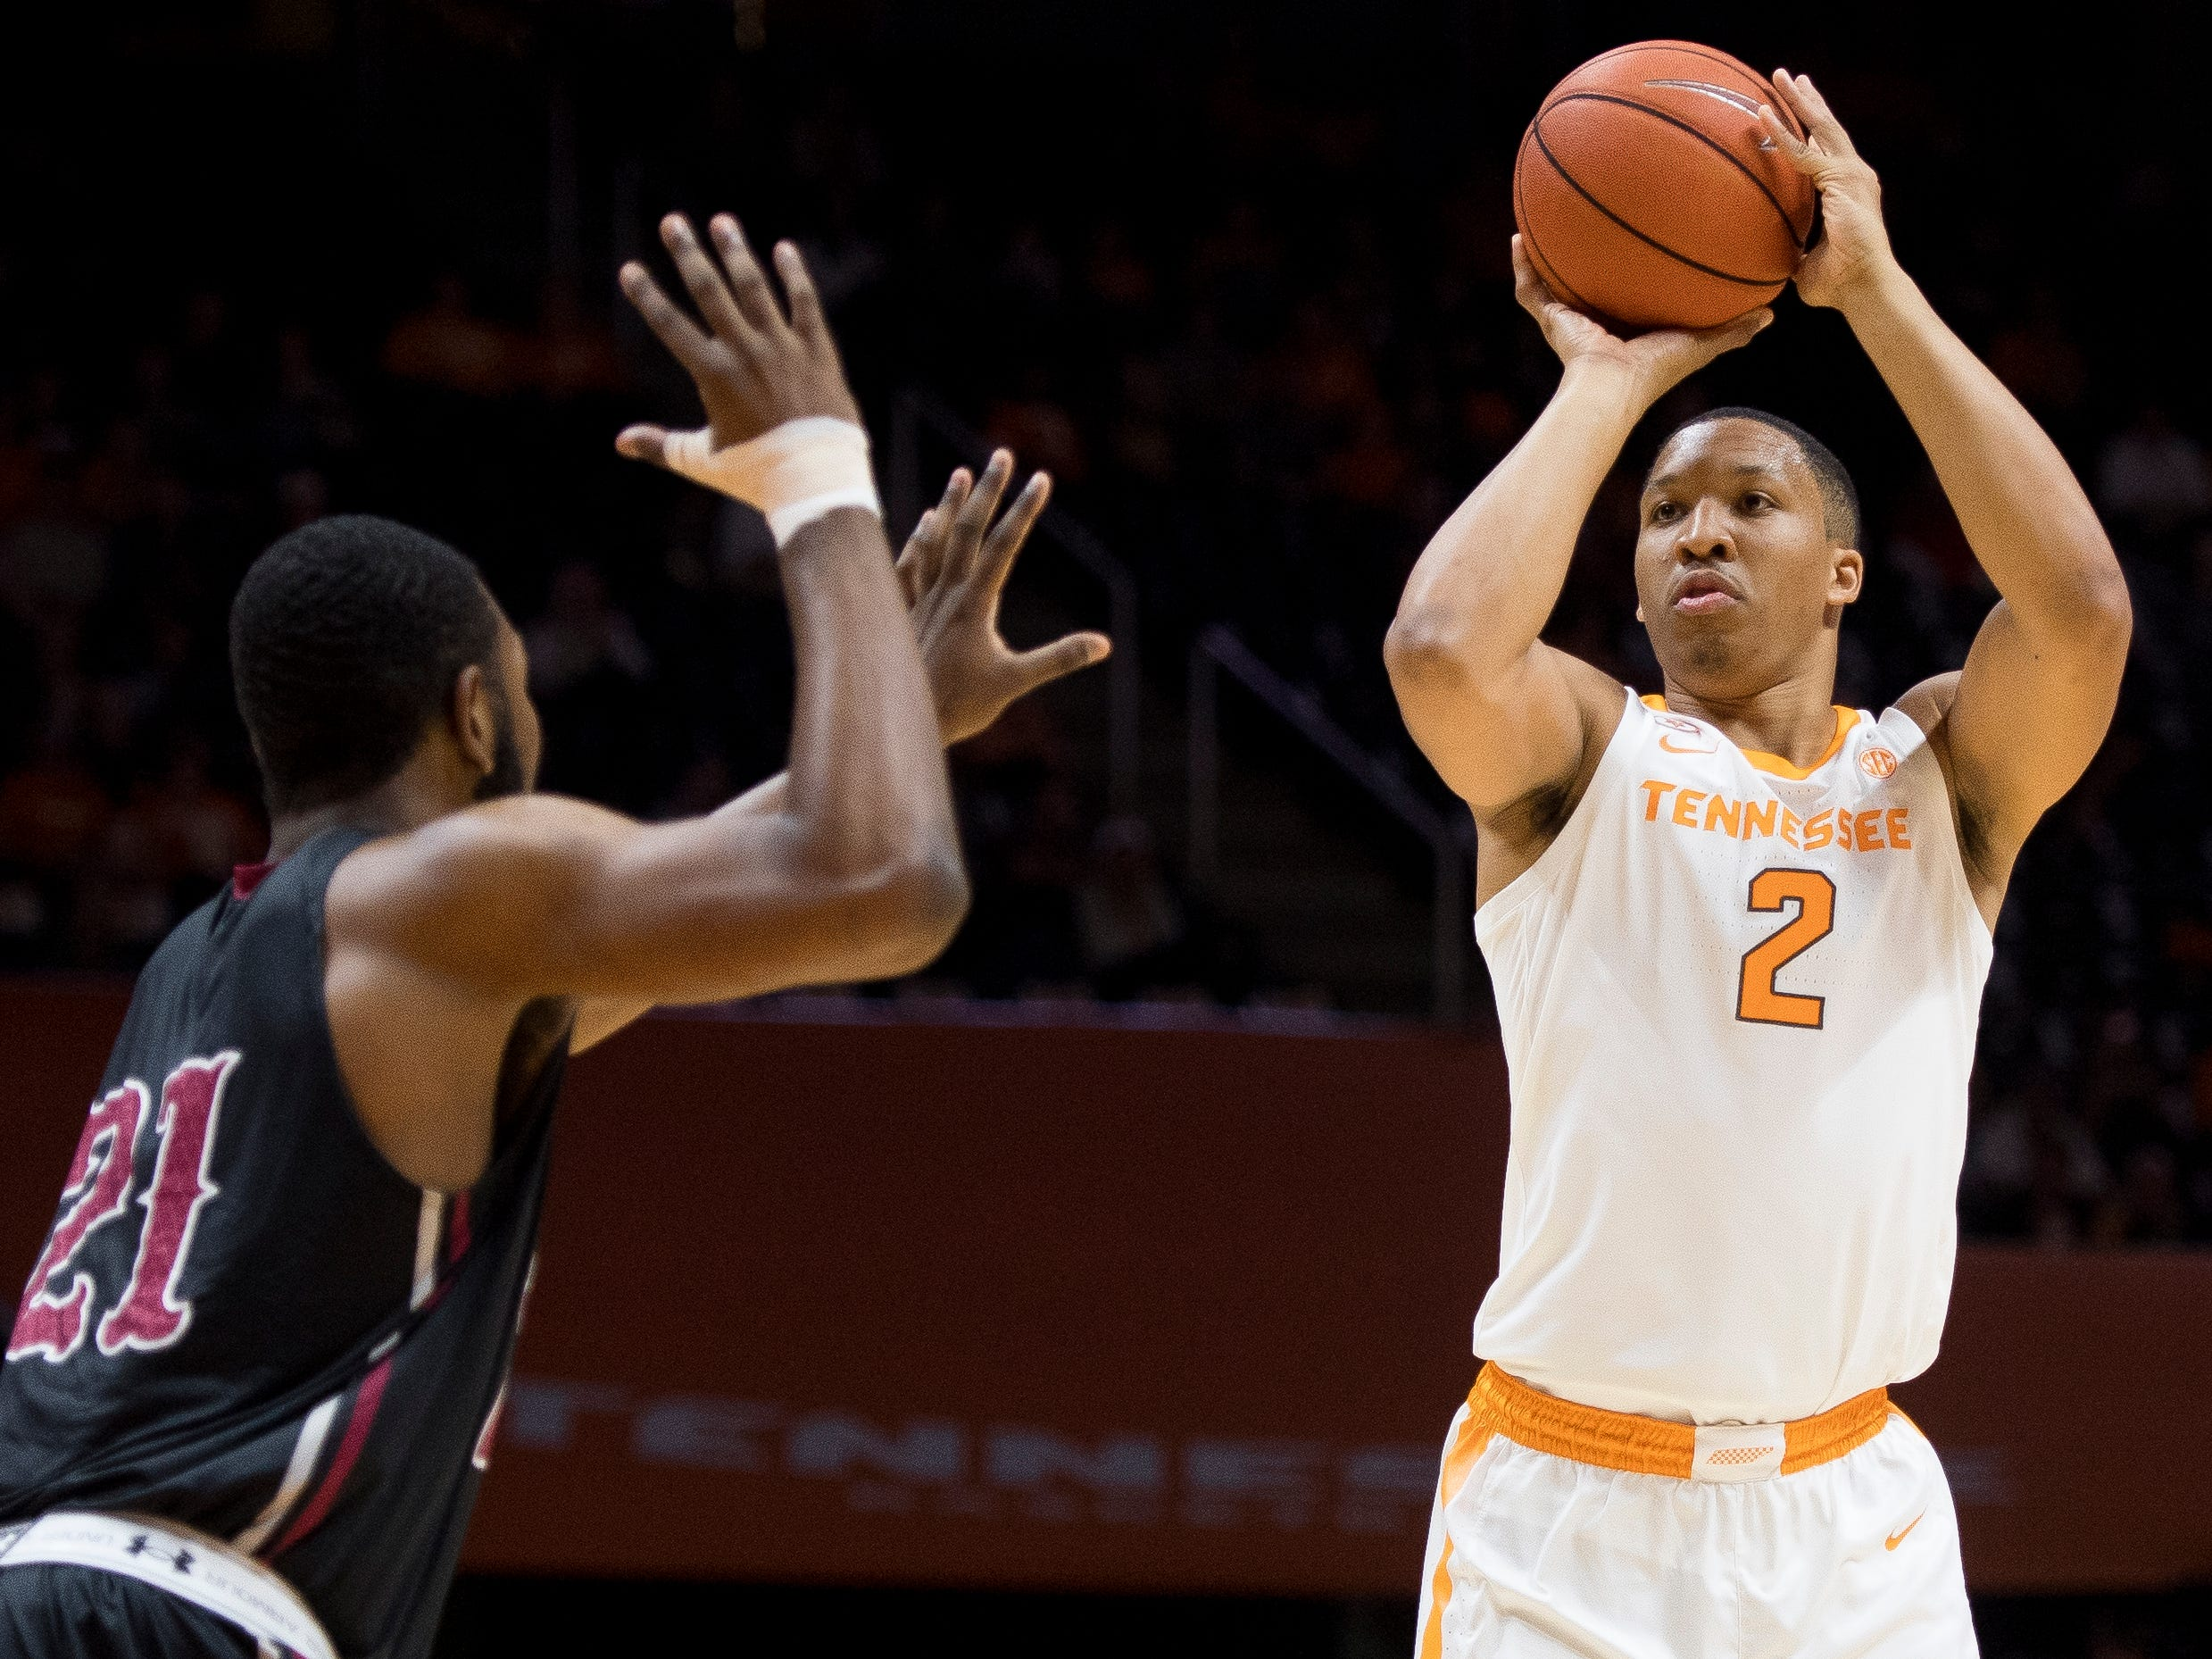 Tennessee forward Grant Williams (2) attempts a shot past Lenoir-Rhyne guard R.J. Gunn (21) during Tennessee's basketball game against Lenoir-Rhyne at Thompson-Boling Arena in Knoxville on Tuesday, November 6, 2018.